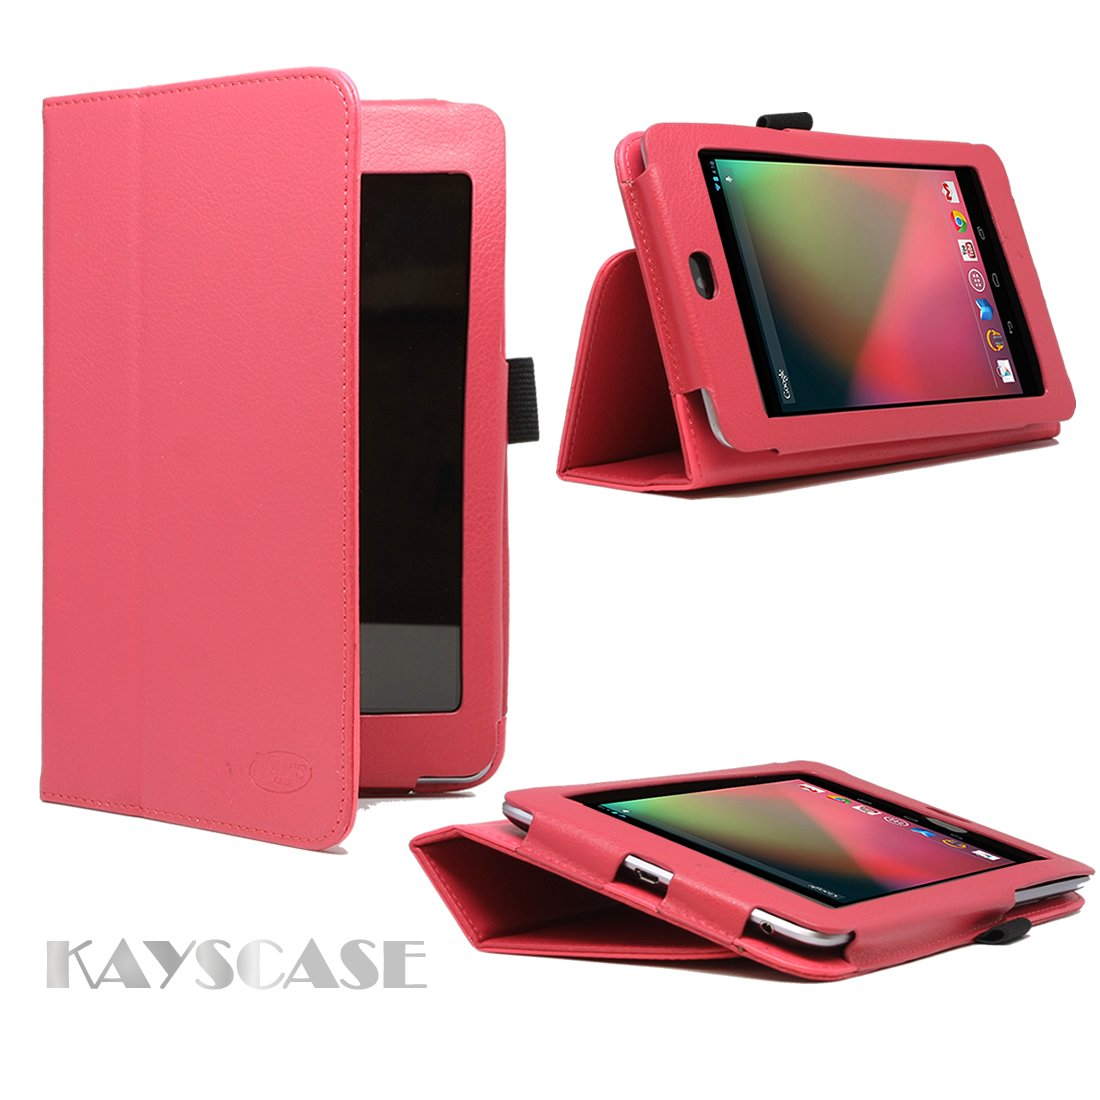 Cases stylish for nexus 7 tablet